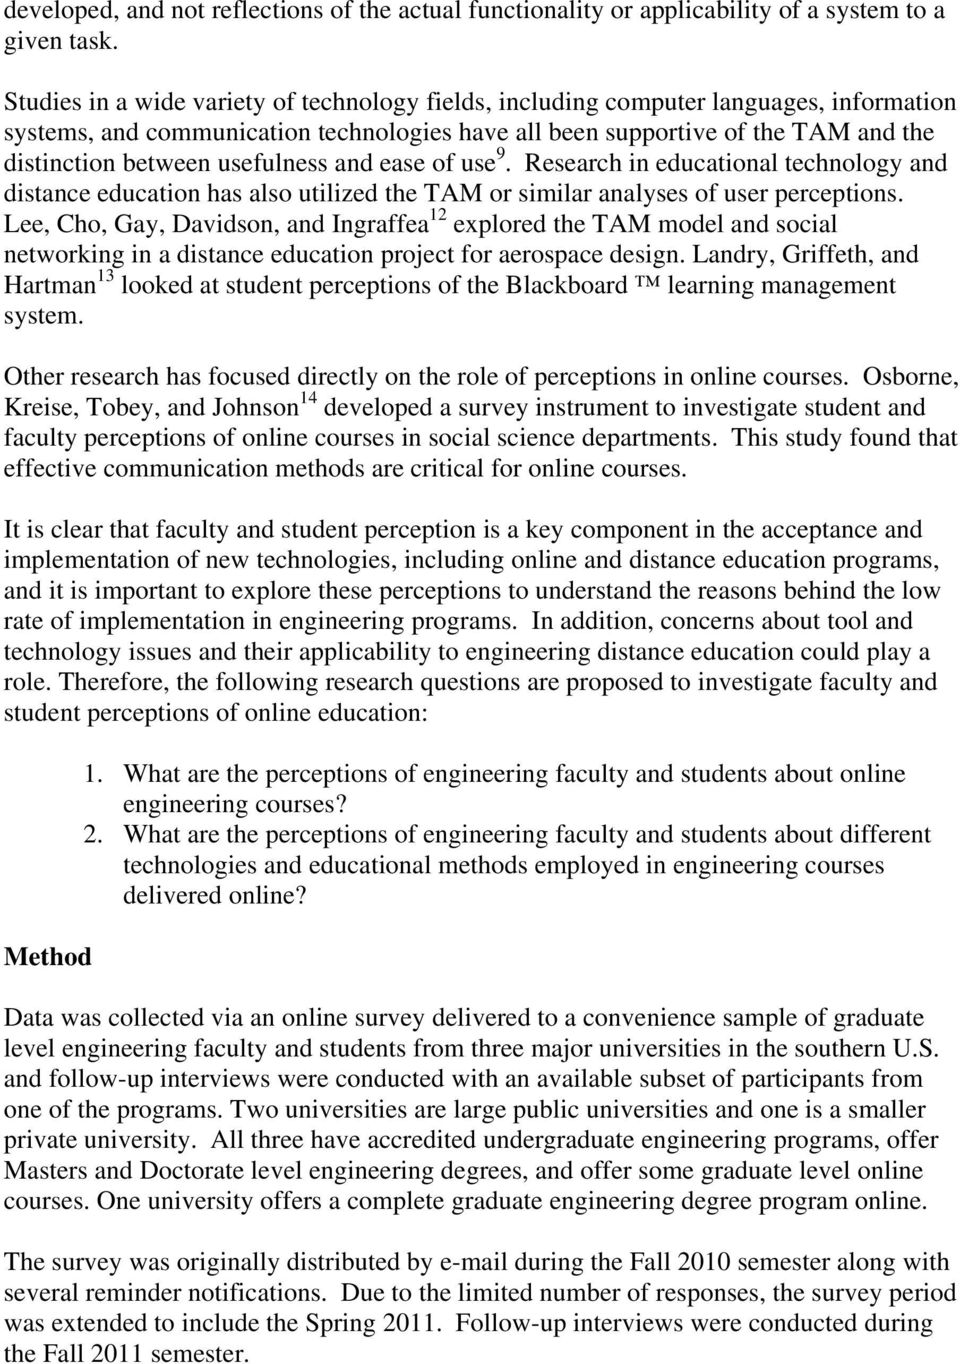 usefulness and ease of use 9. Research in educational technology and distance education has also utilized the TAM or similar analyses of user perceptions.